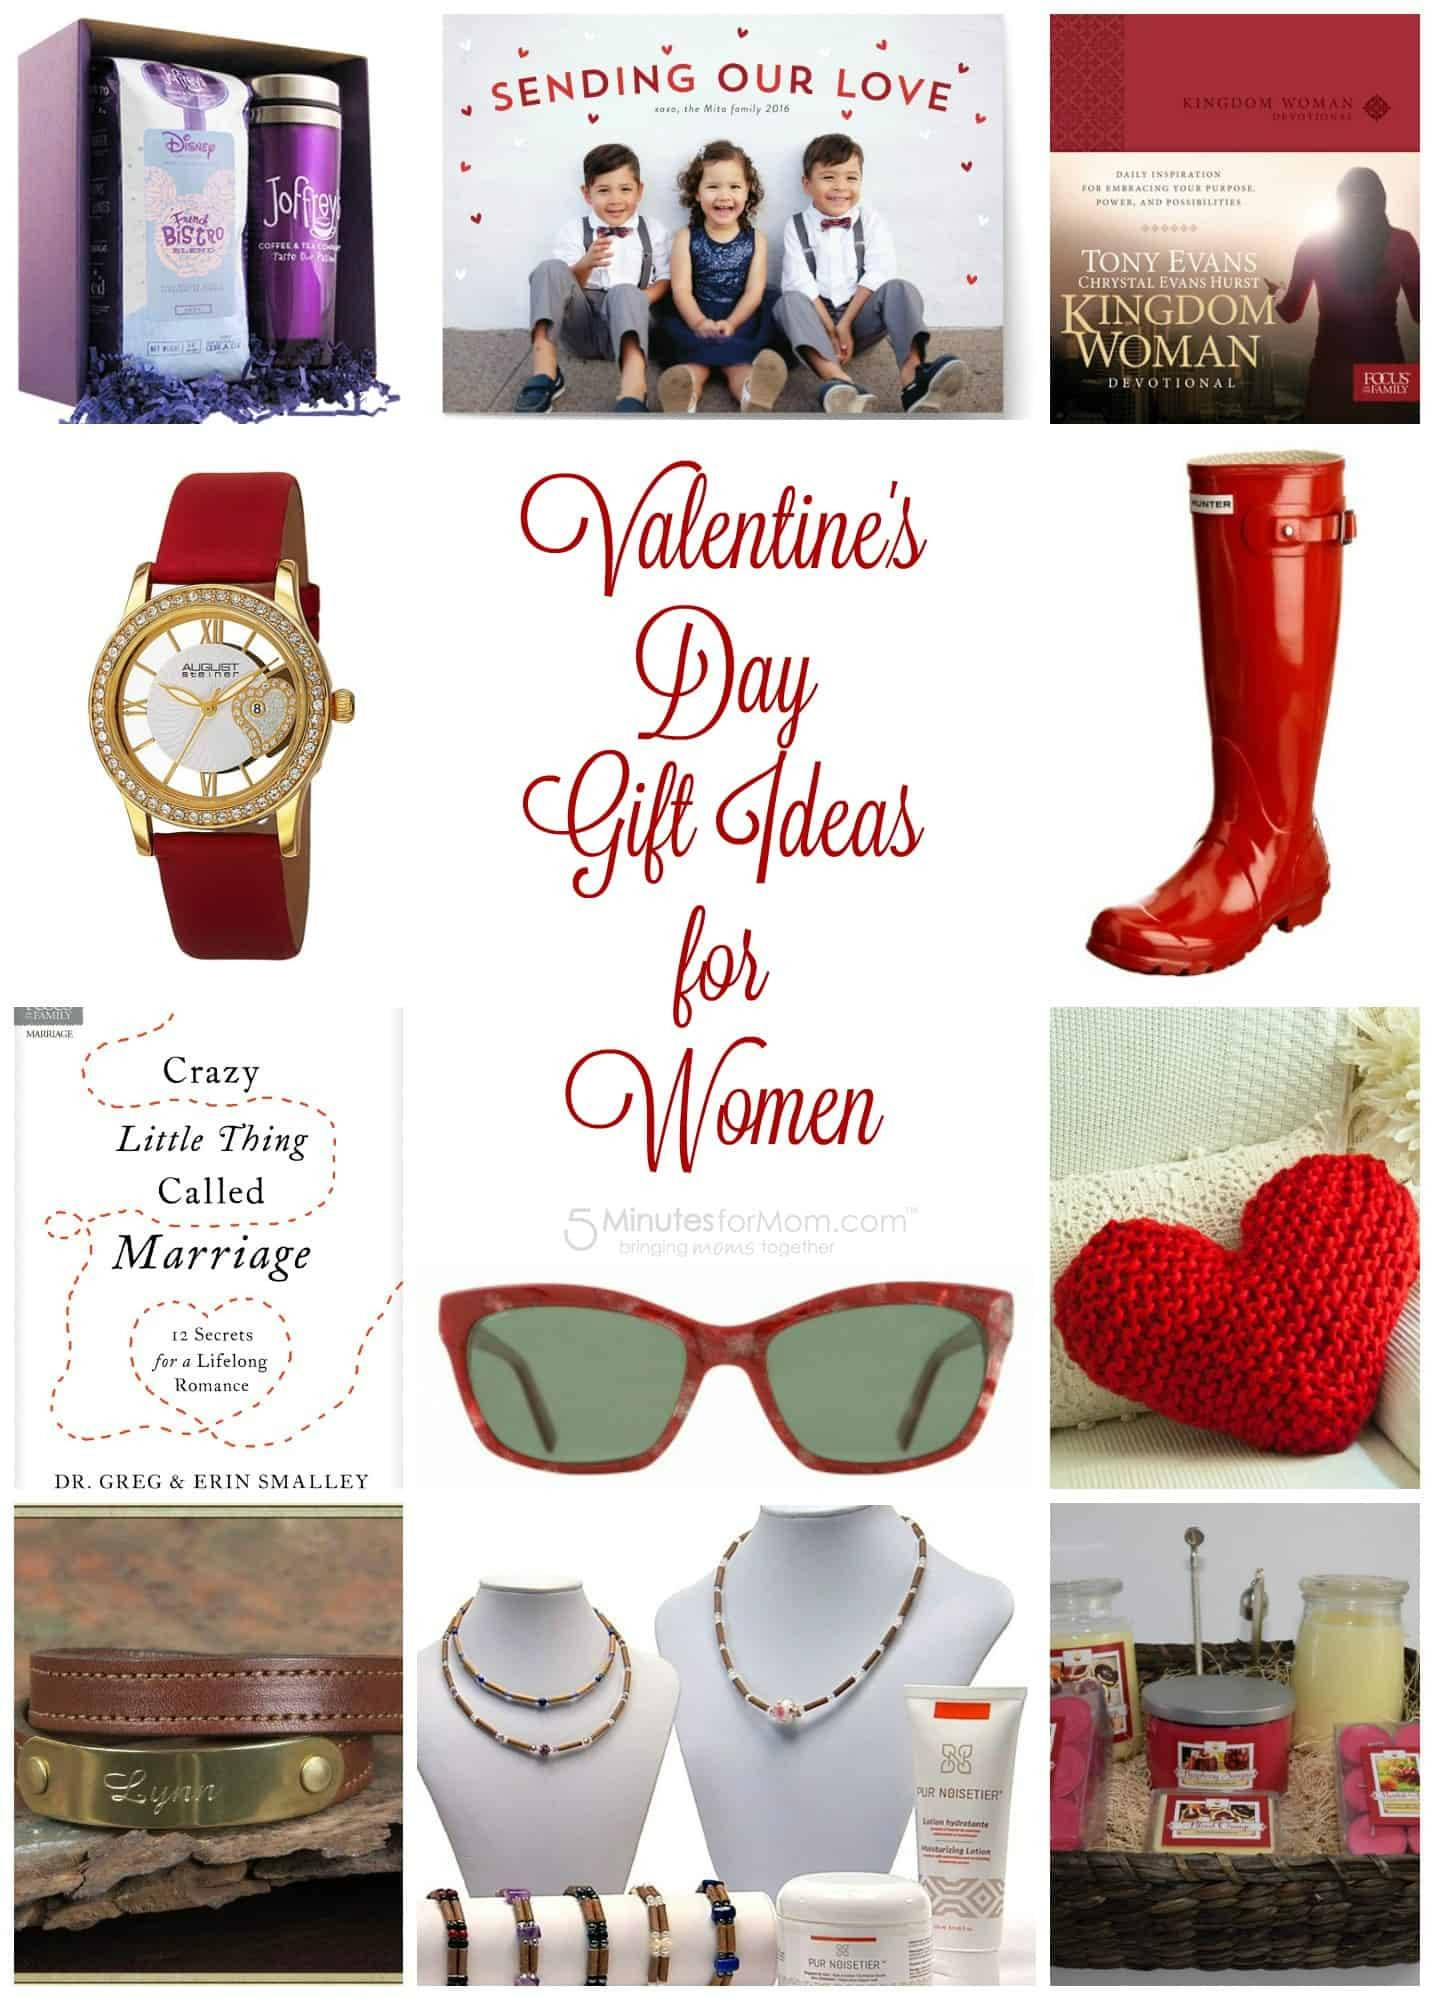 valentineamp039s day t ideas for women luxury valentine s day t guide for women plus 100 of valentine039s day t ideas for women